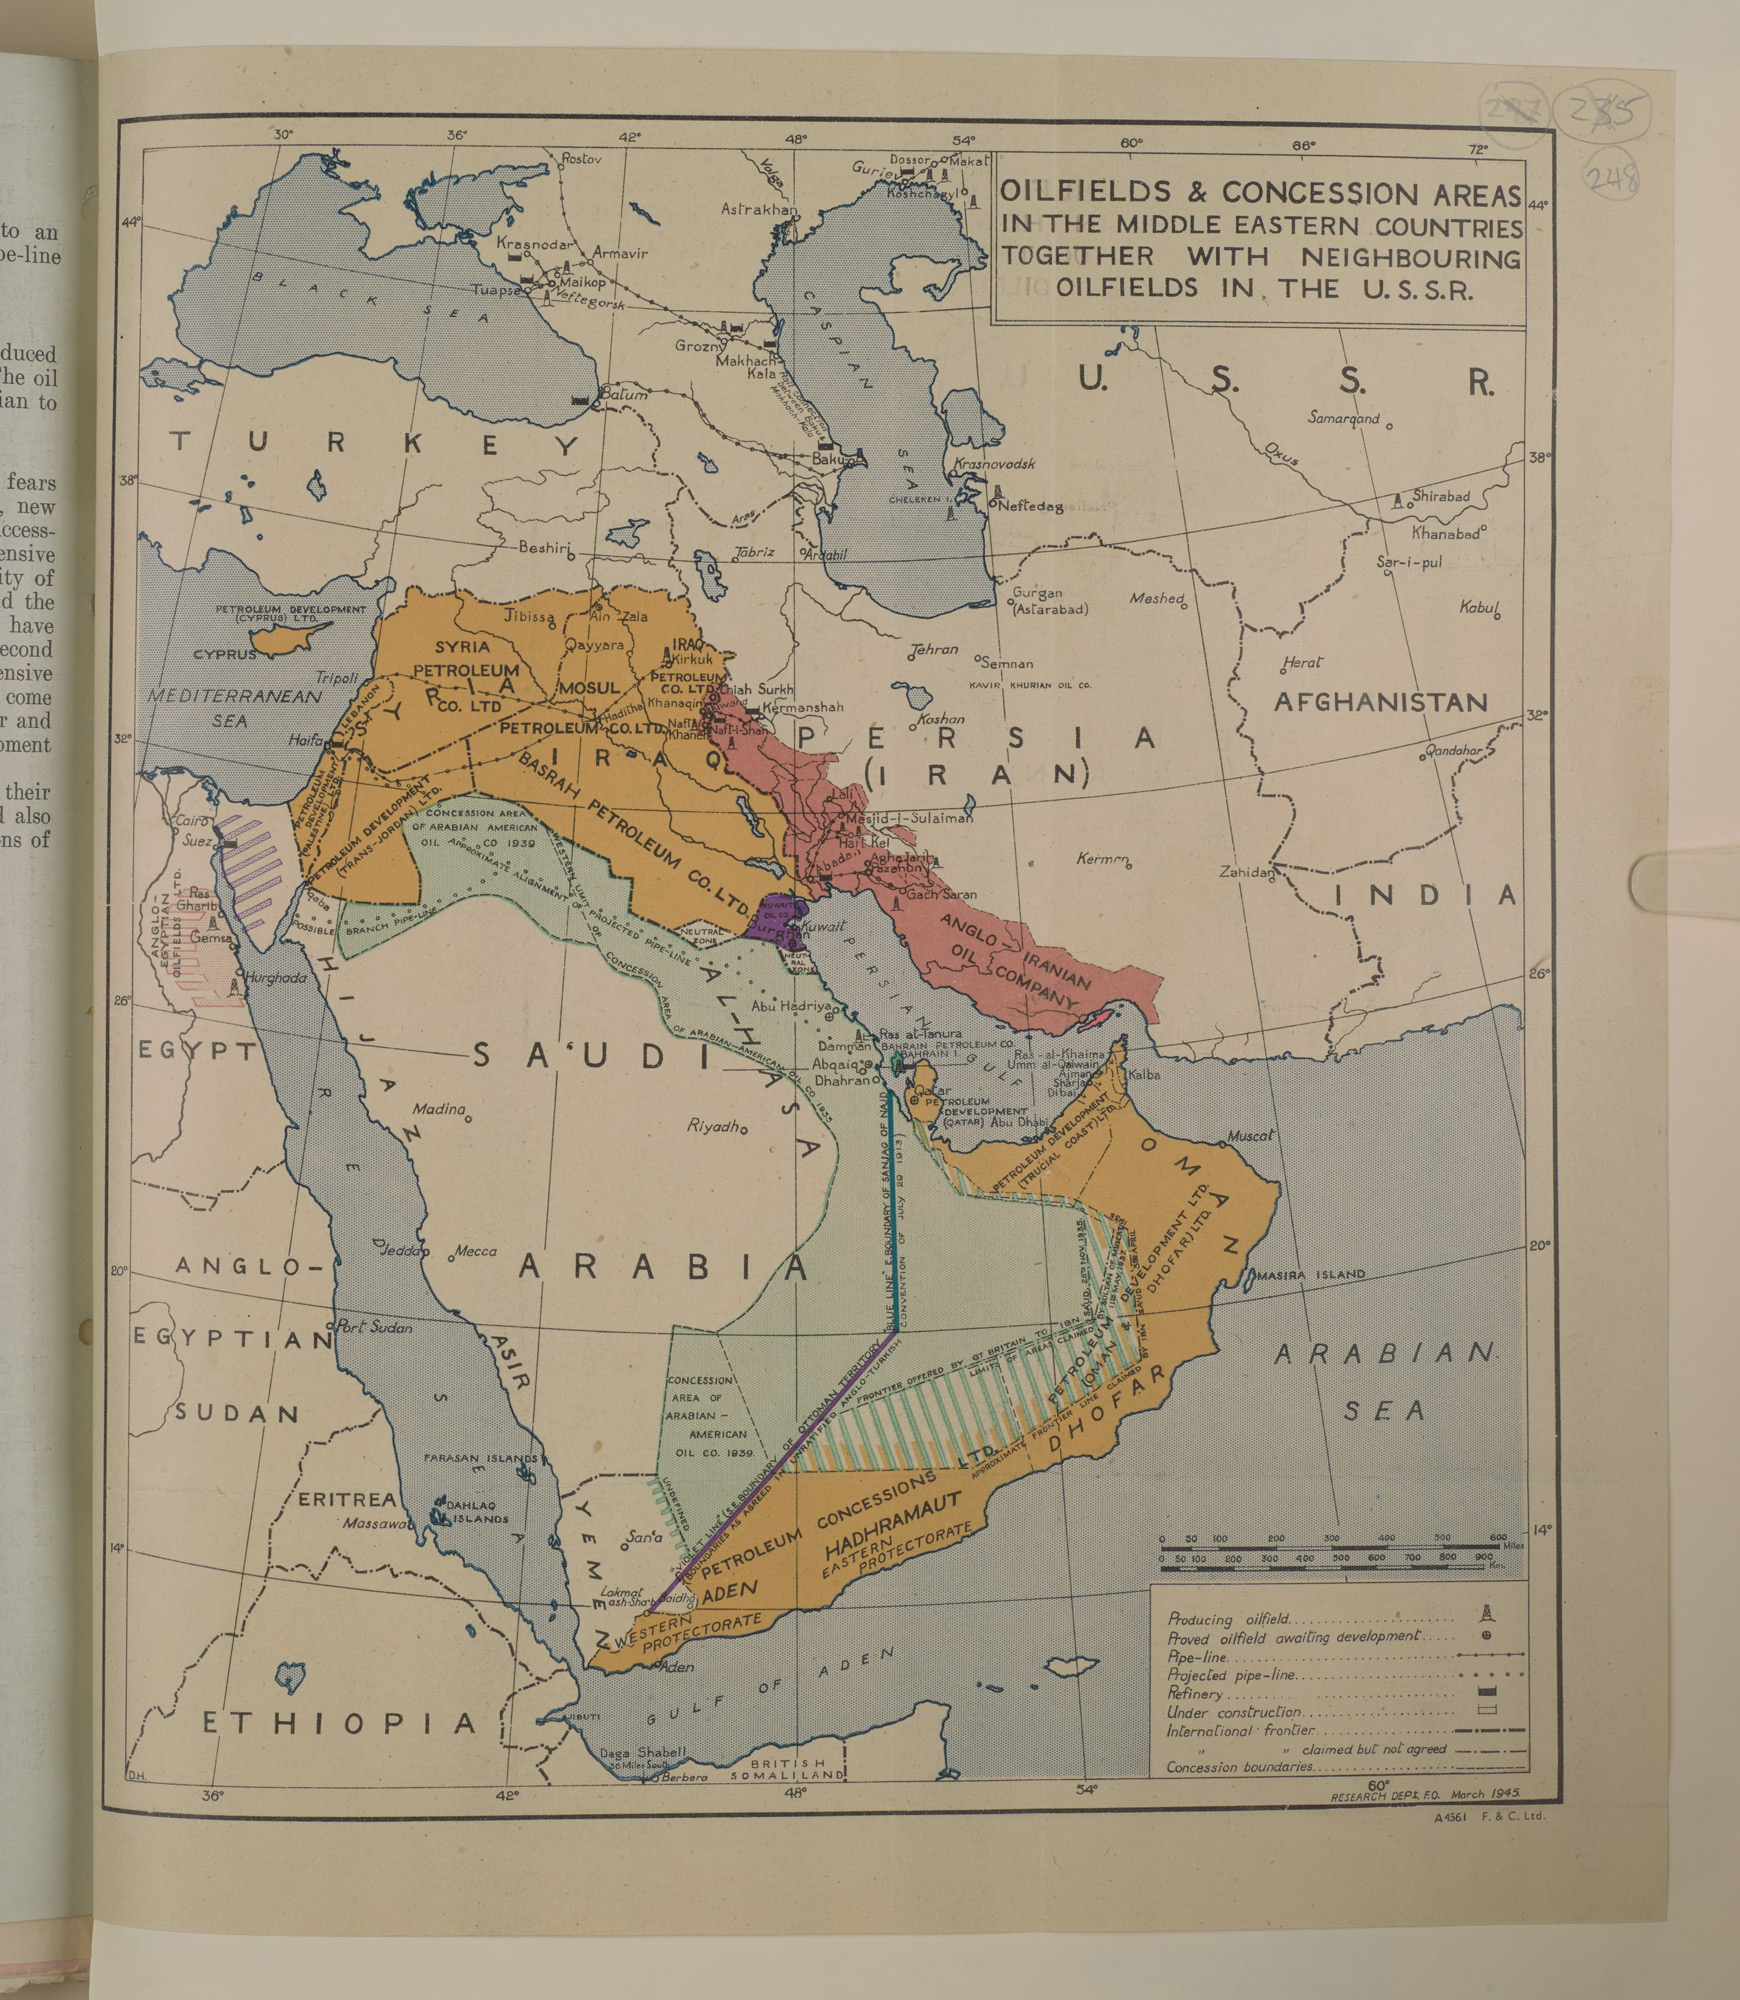 Oilfields & concession areas in the Middle Eastern Countries